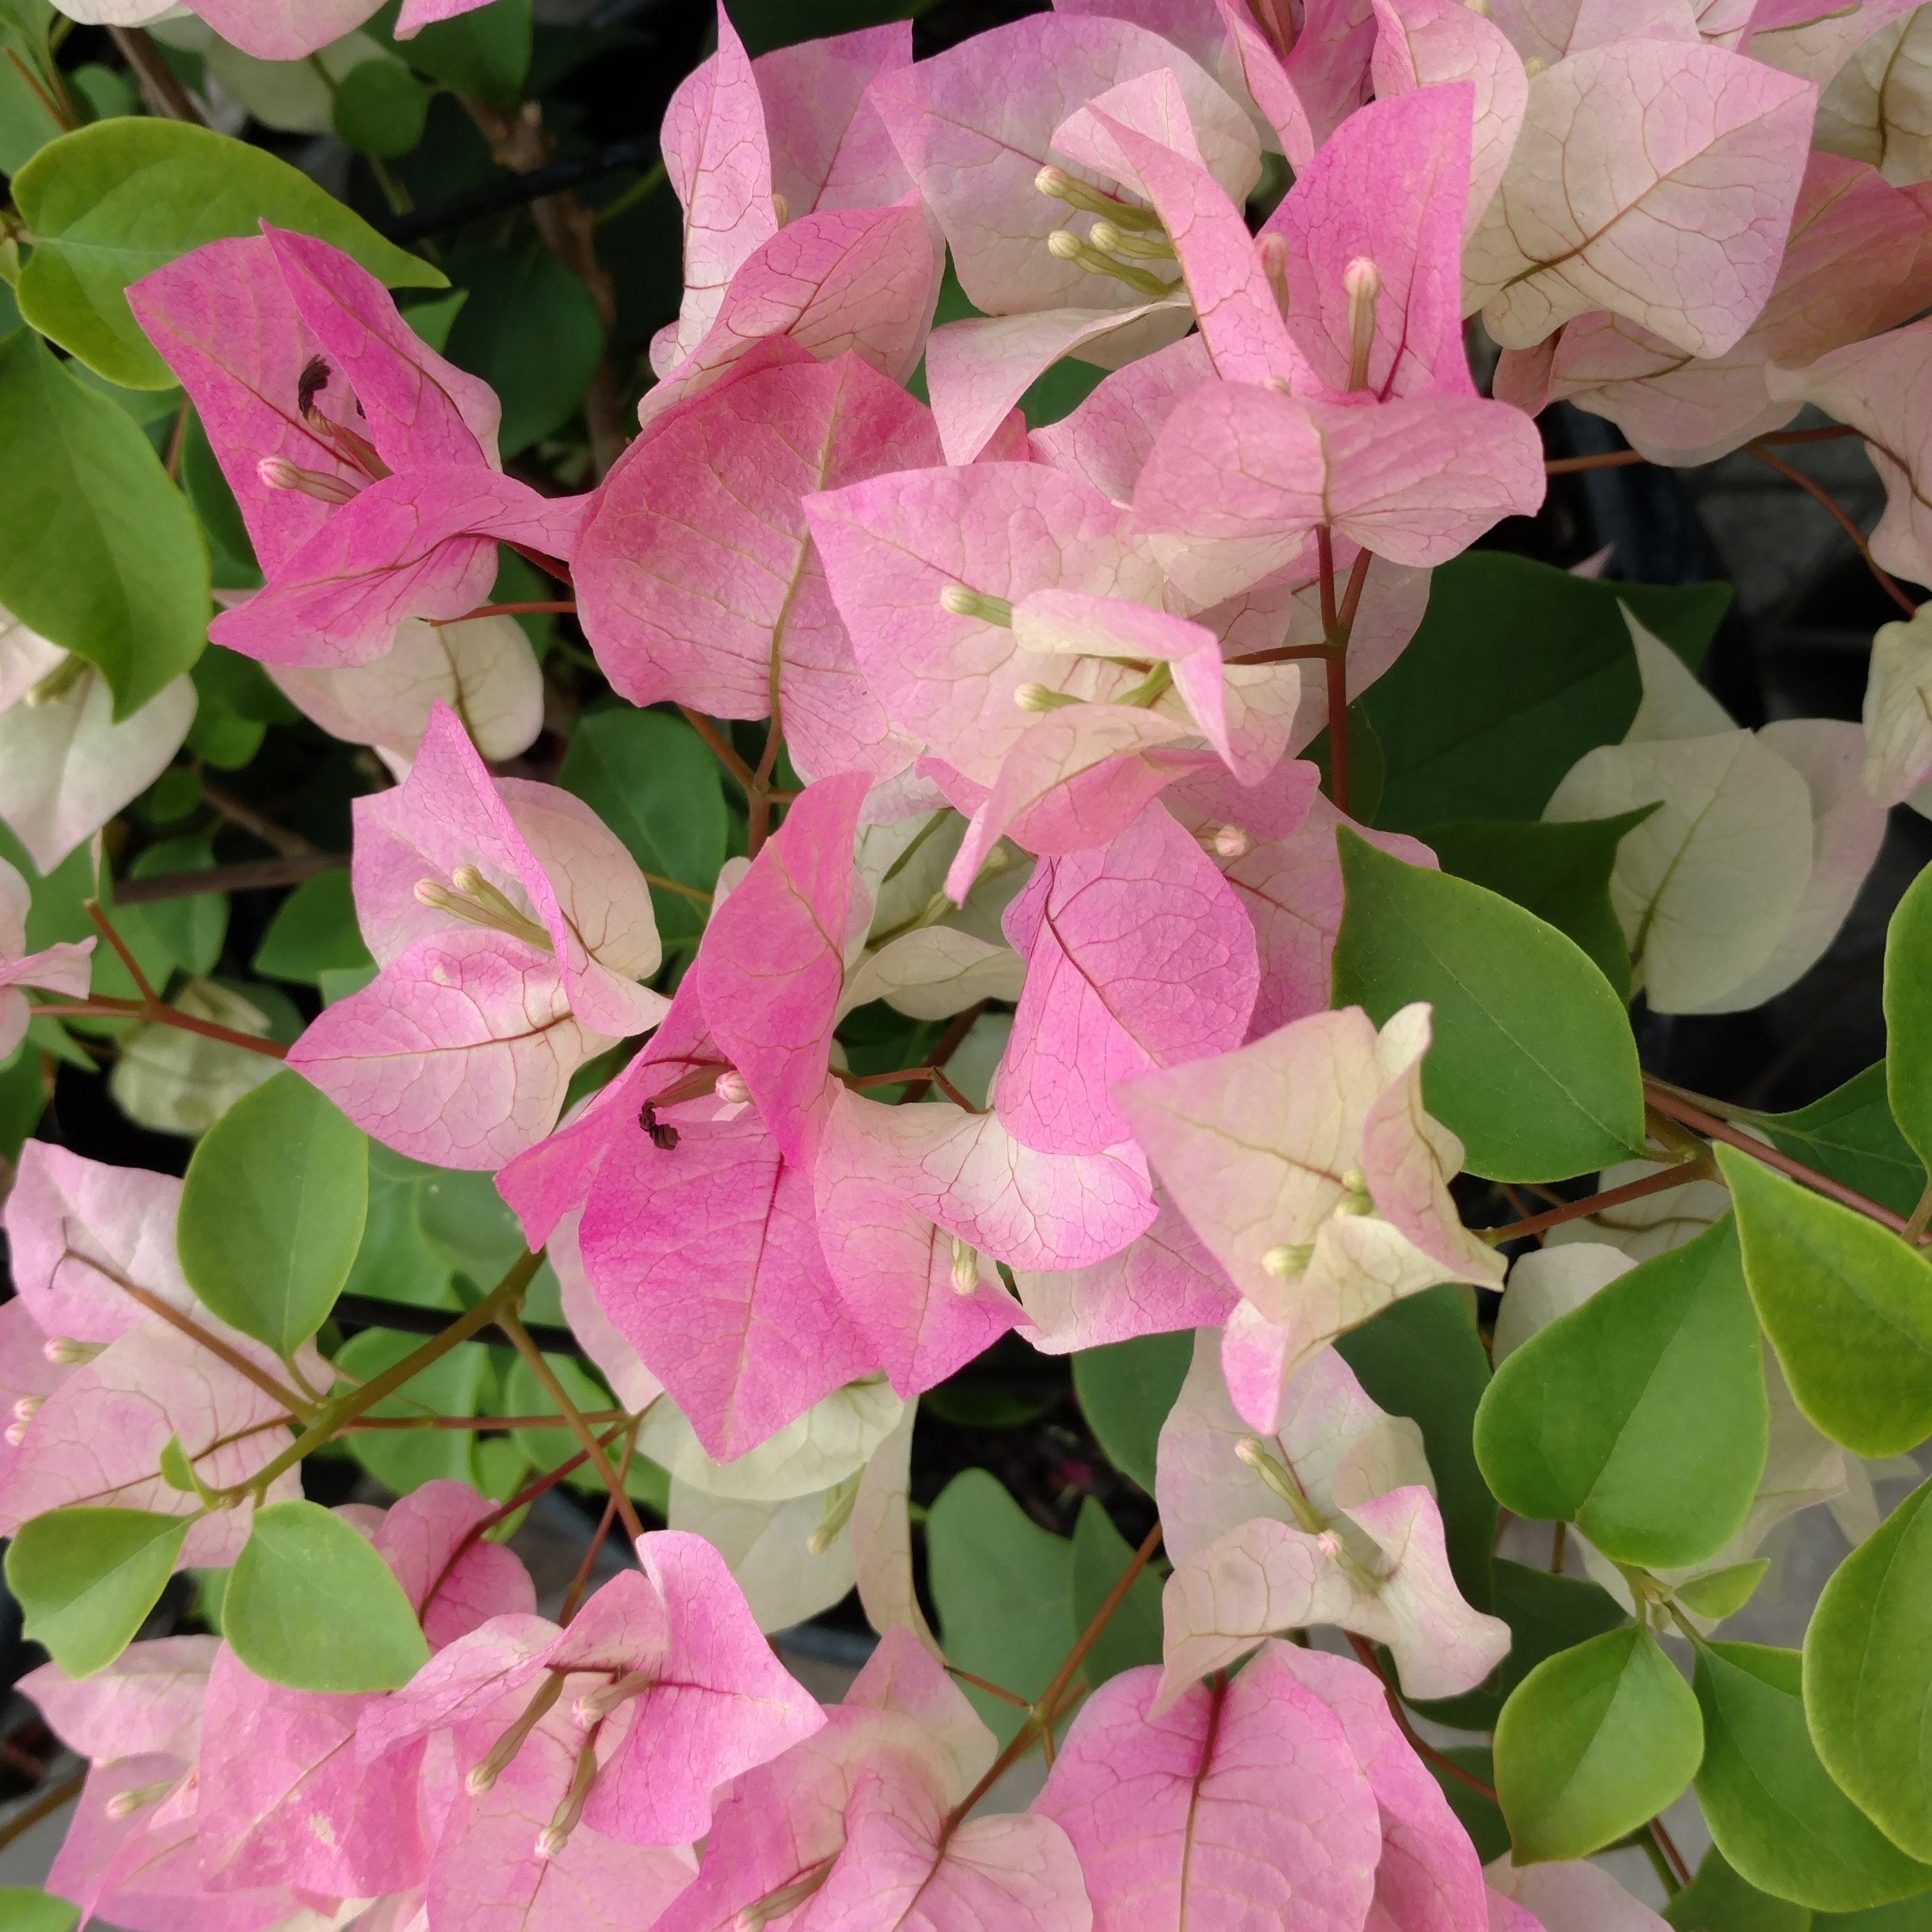 Caring For Bougainvillea Plants: Tips On Growing Bougainvillea In ...